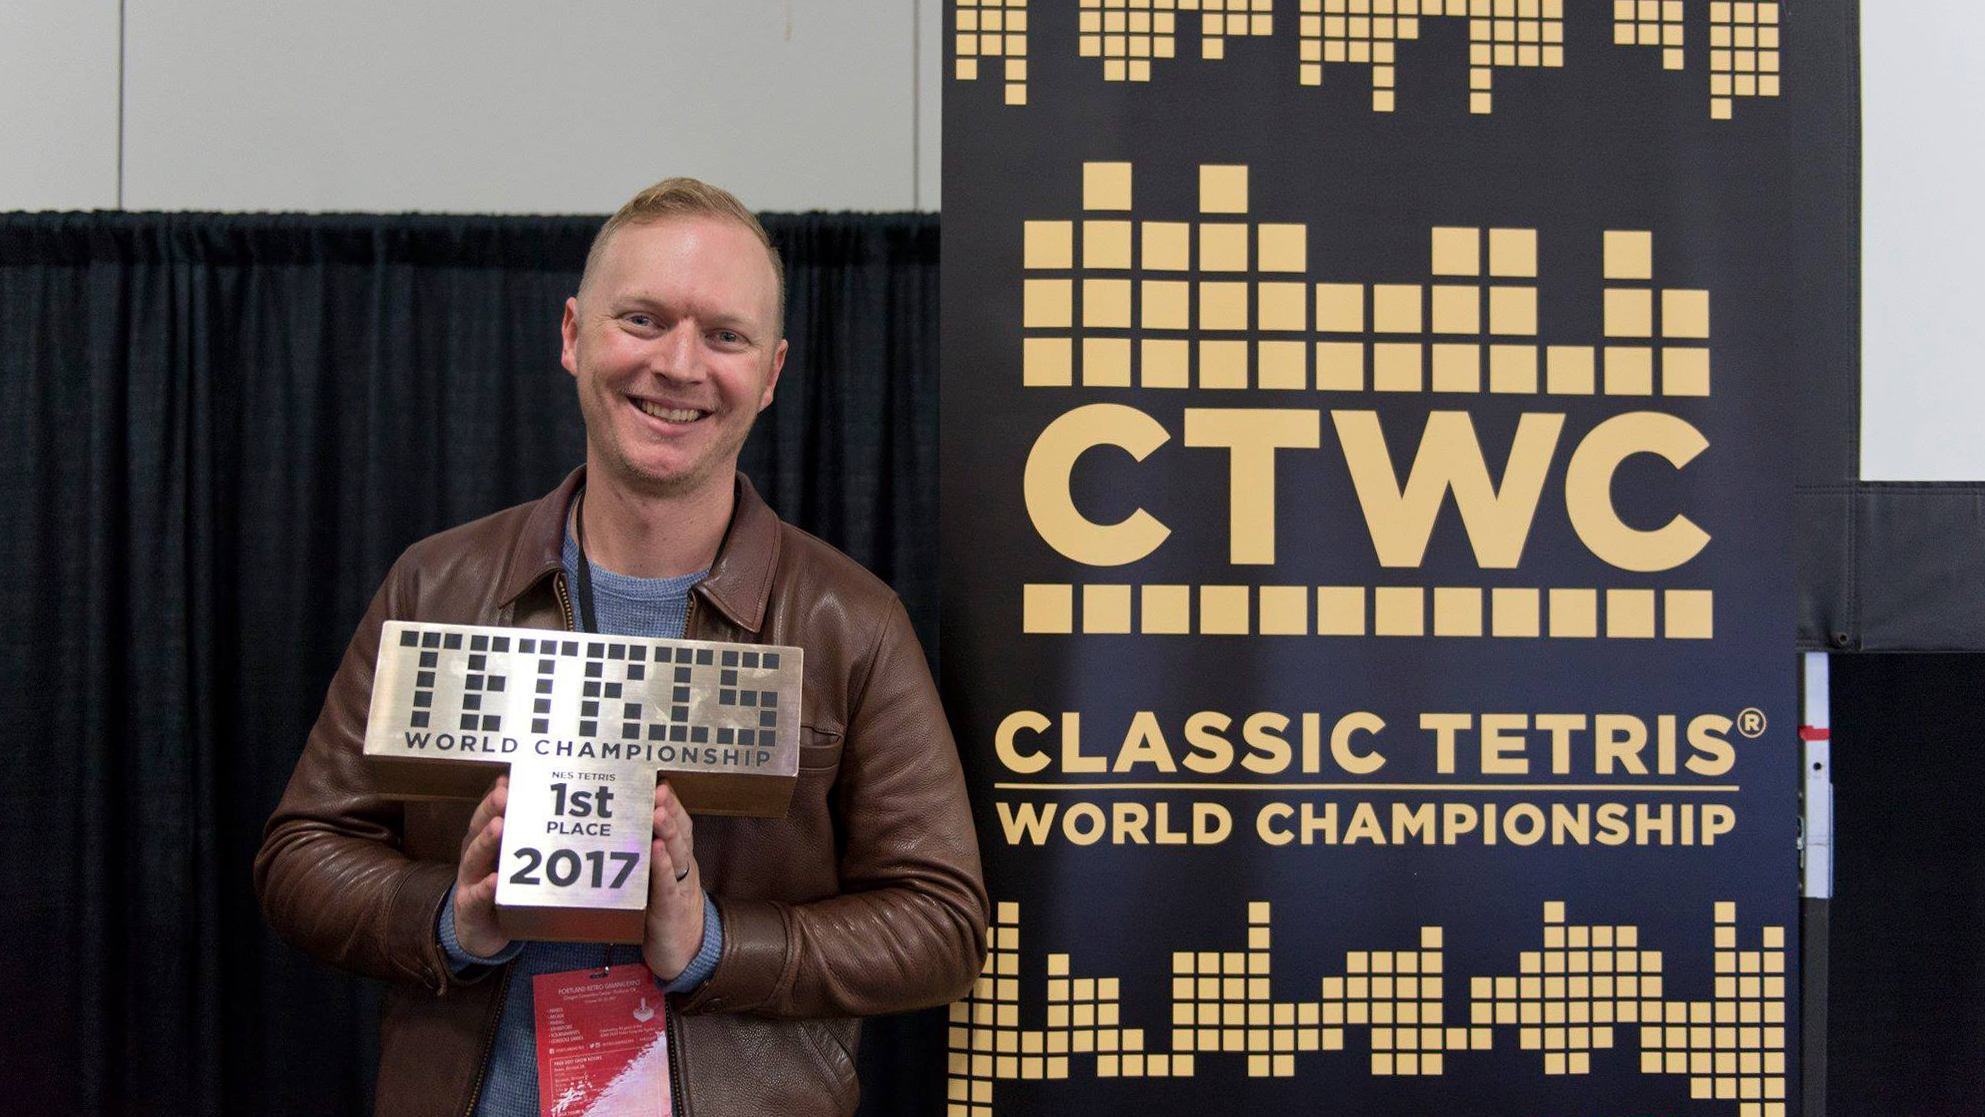 The World's Top Tetris Player's Secret To Success Is Learning To Embrace Chaos